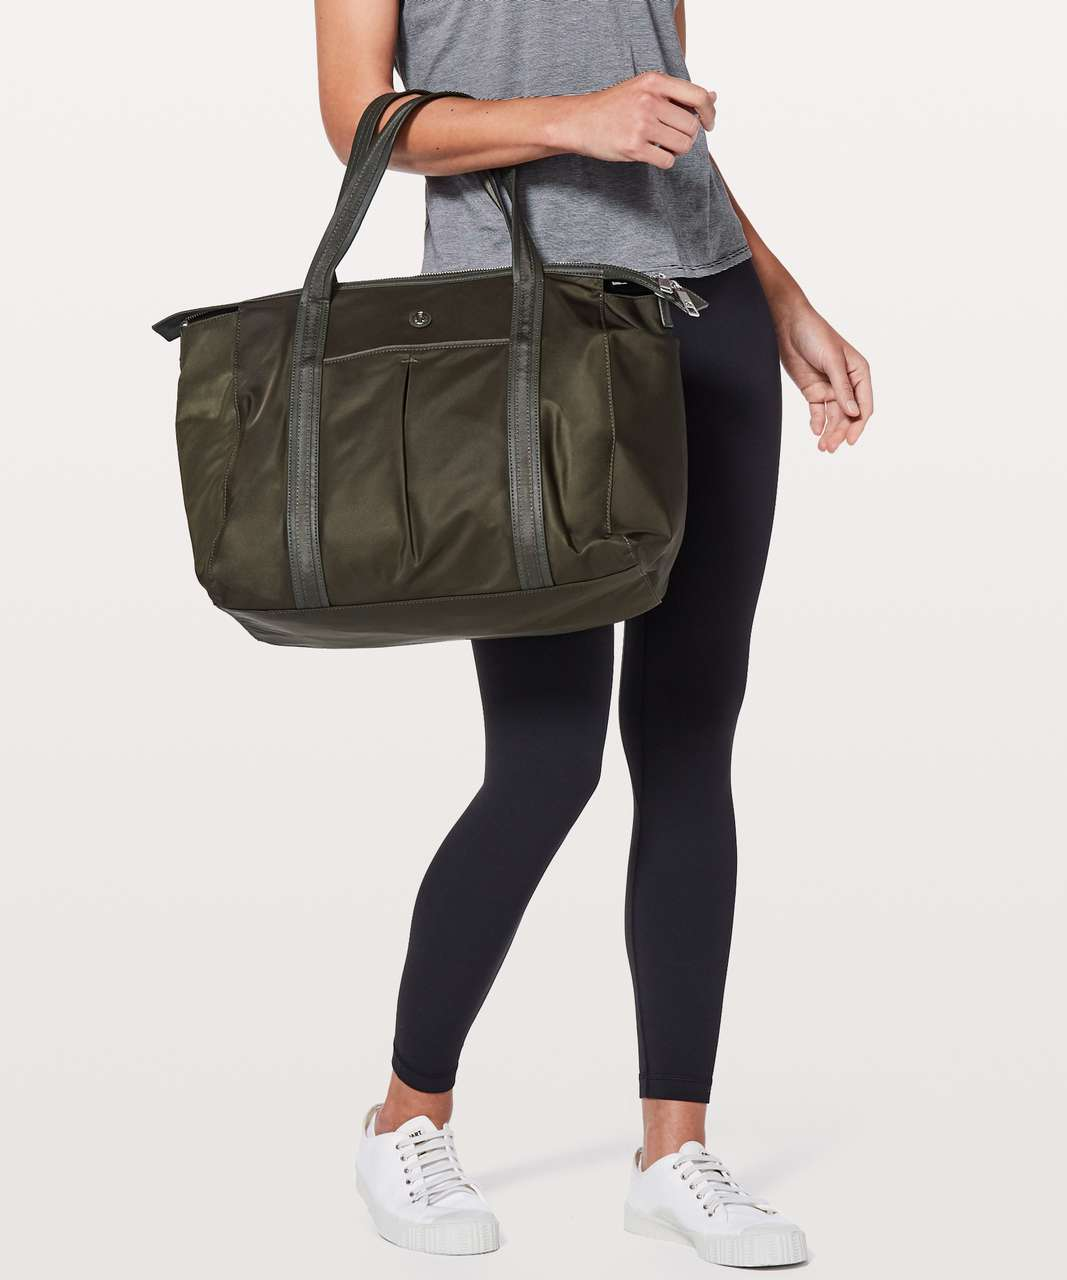 Lululemon Everywhere Bag *23L - Dark Olive